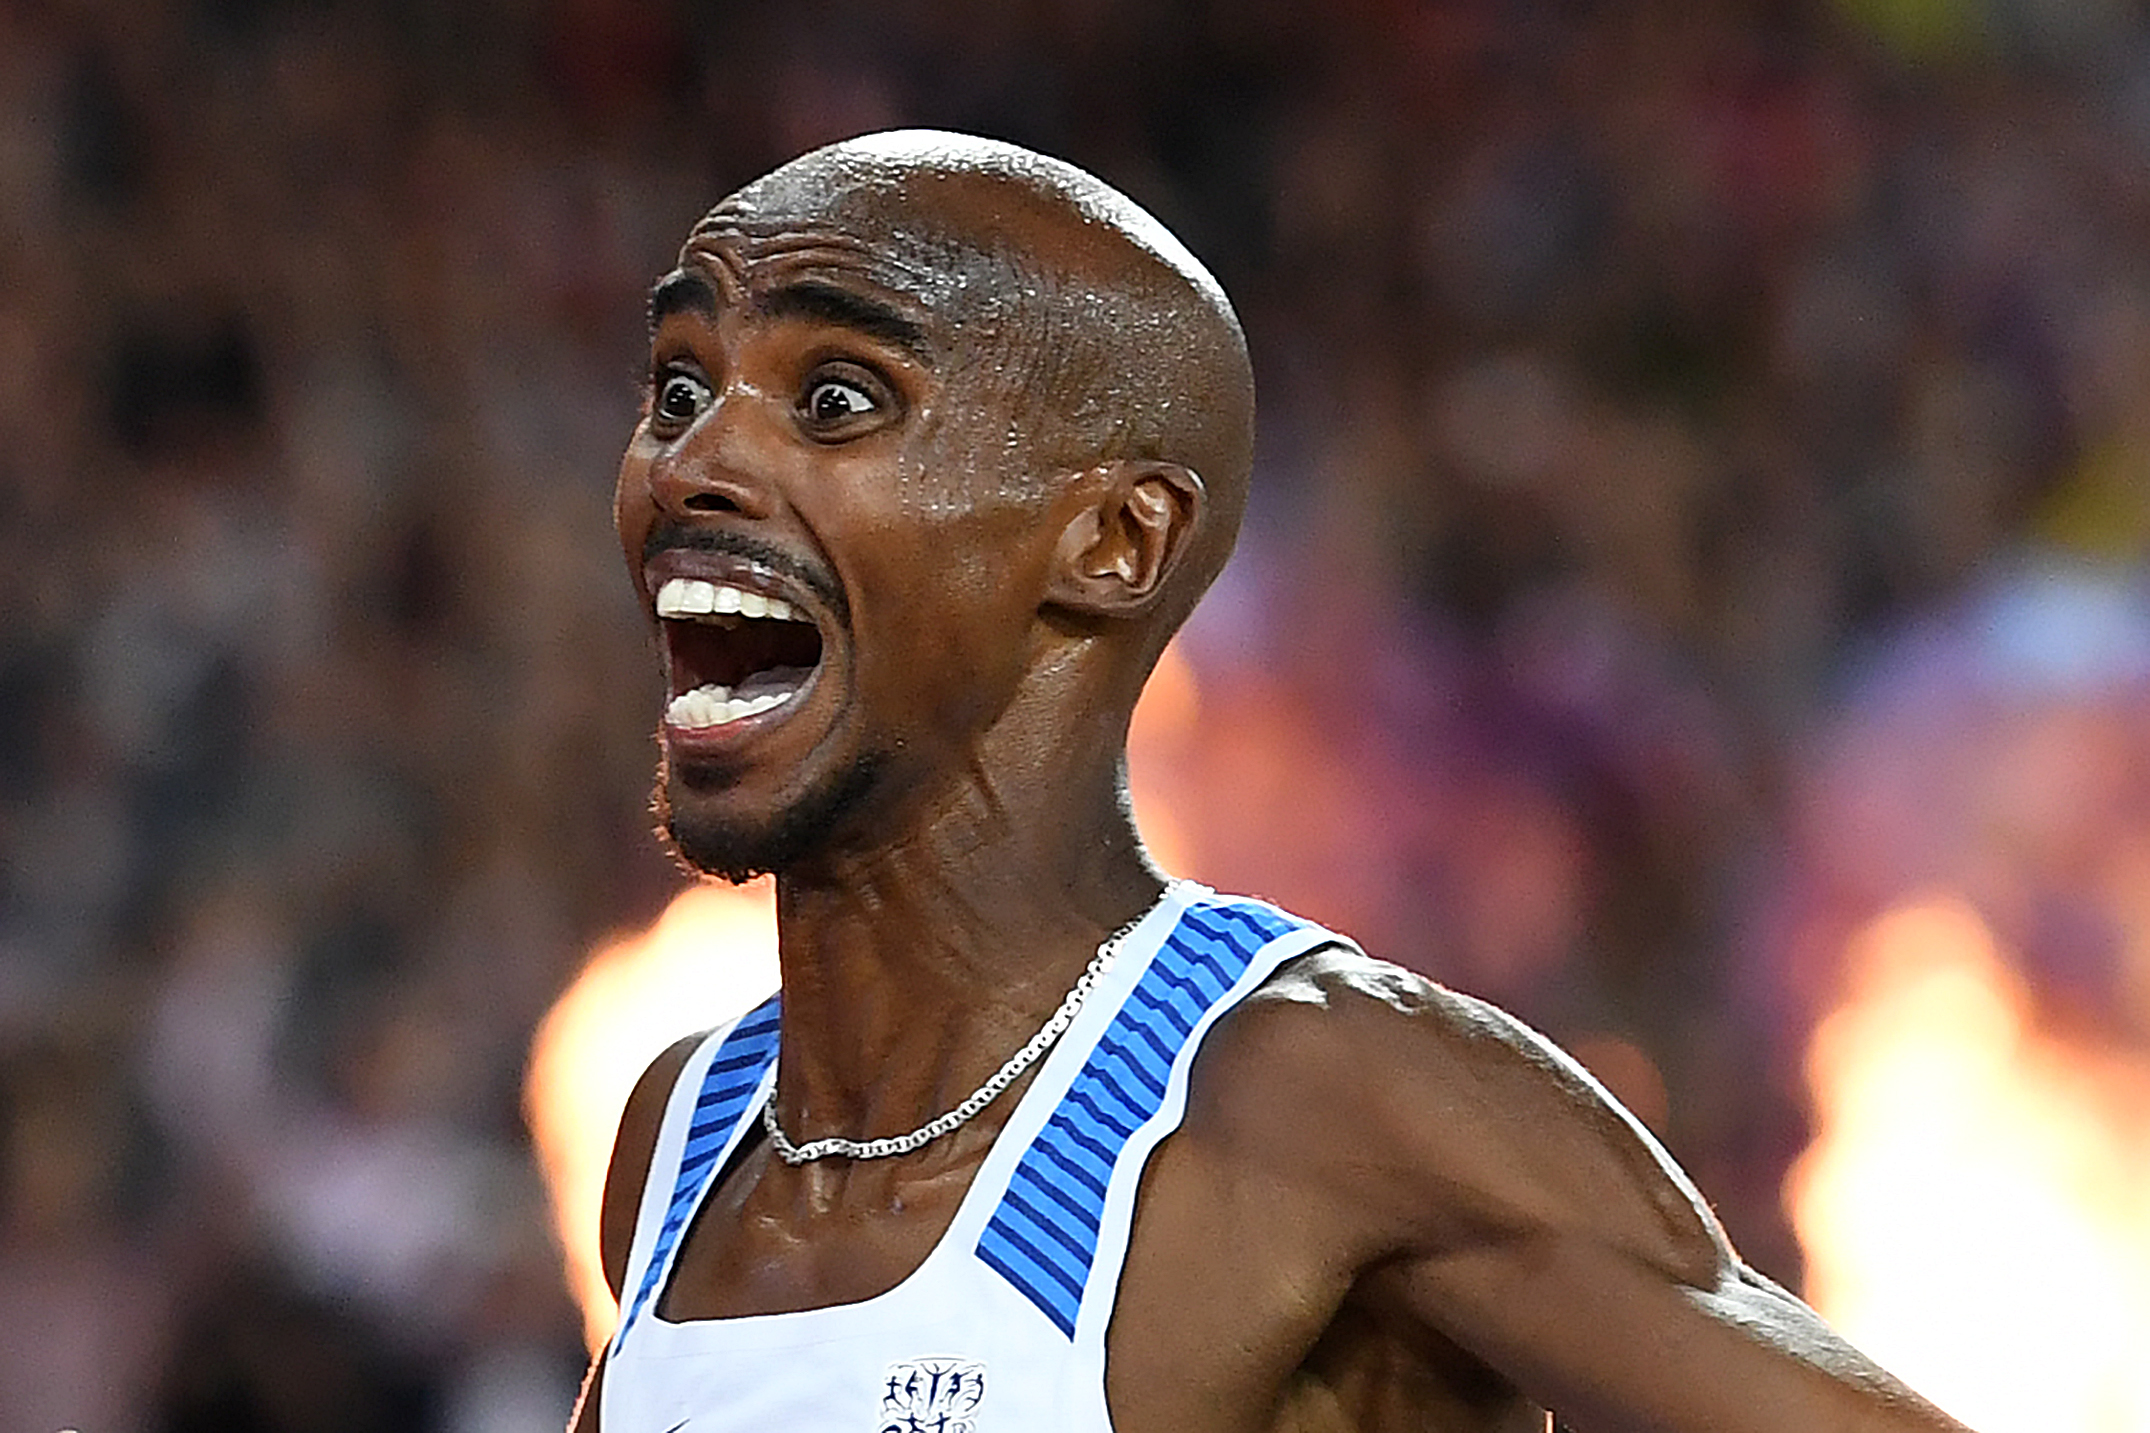 World Athletics Championships: When is Mo Farah running his final race?